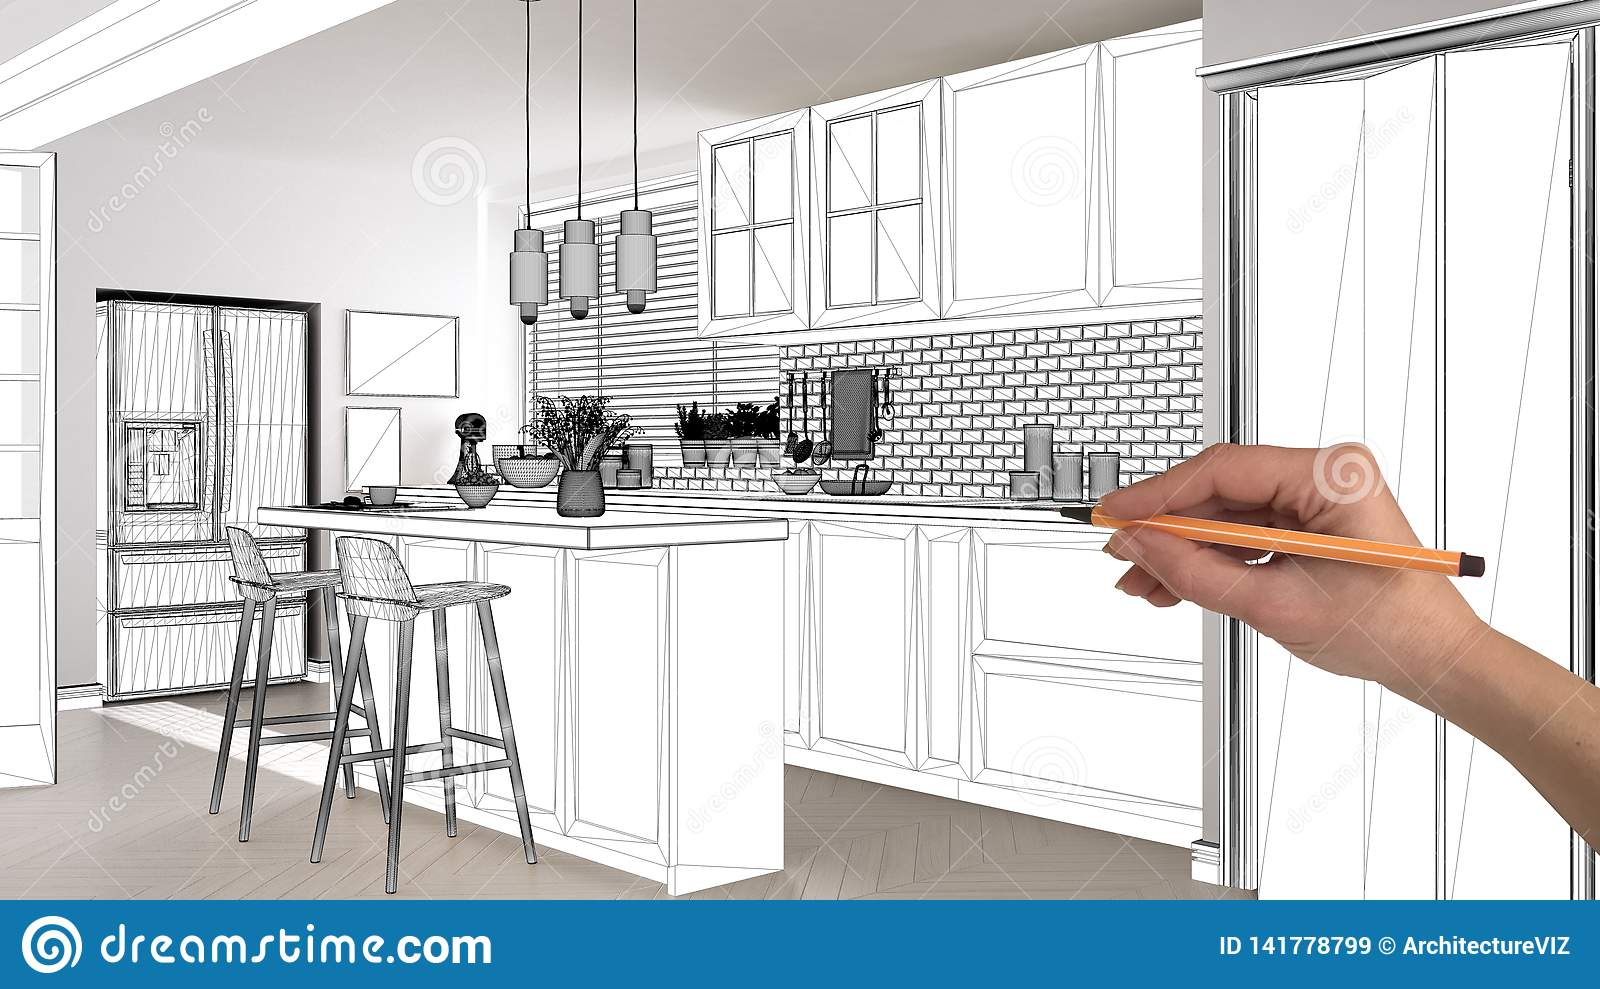 Unfinished Project Under Construction Draft Concept Interior Design Sketch Hand Drawing Scandinavian Kitchen Blueprint Sketch Stock Image Image Of Draw Draft 141778799